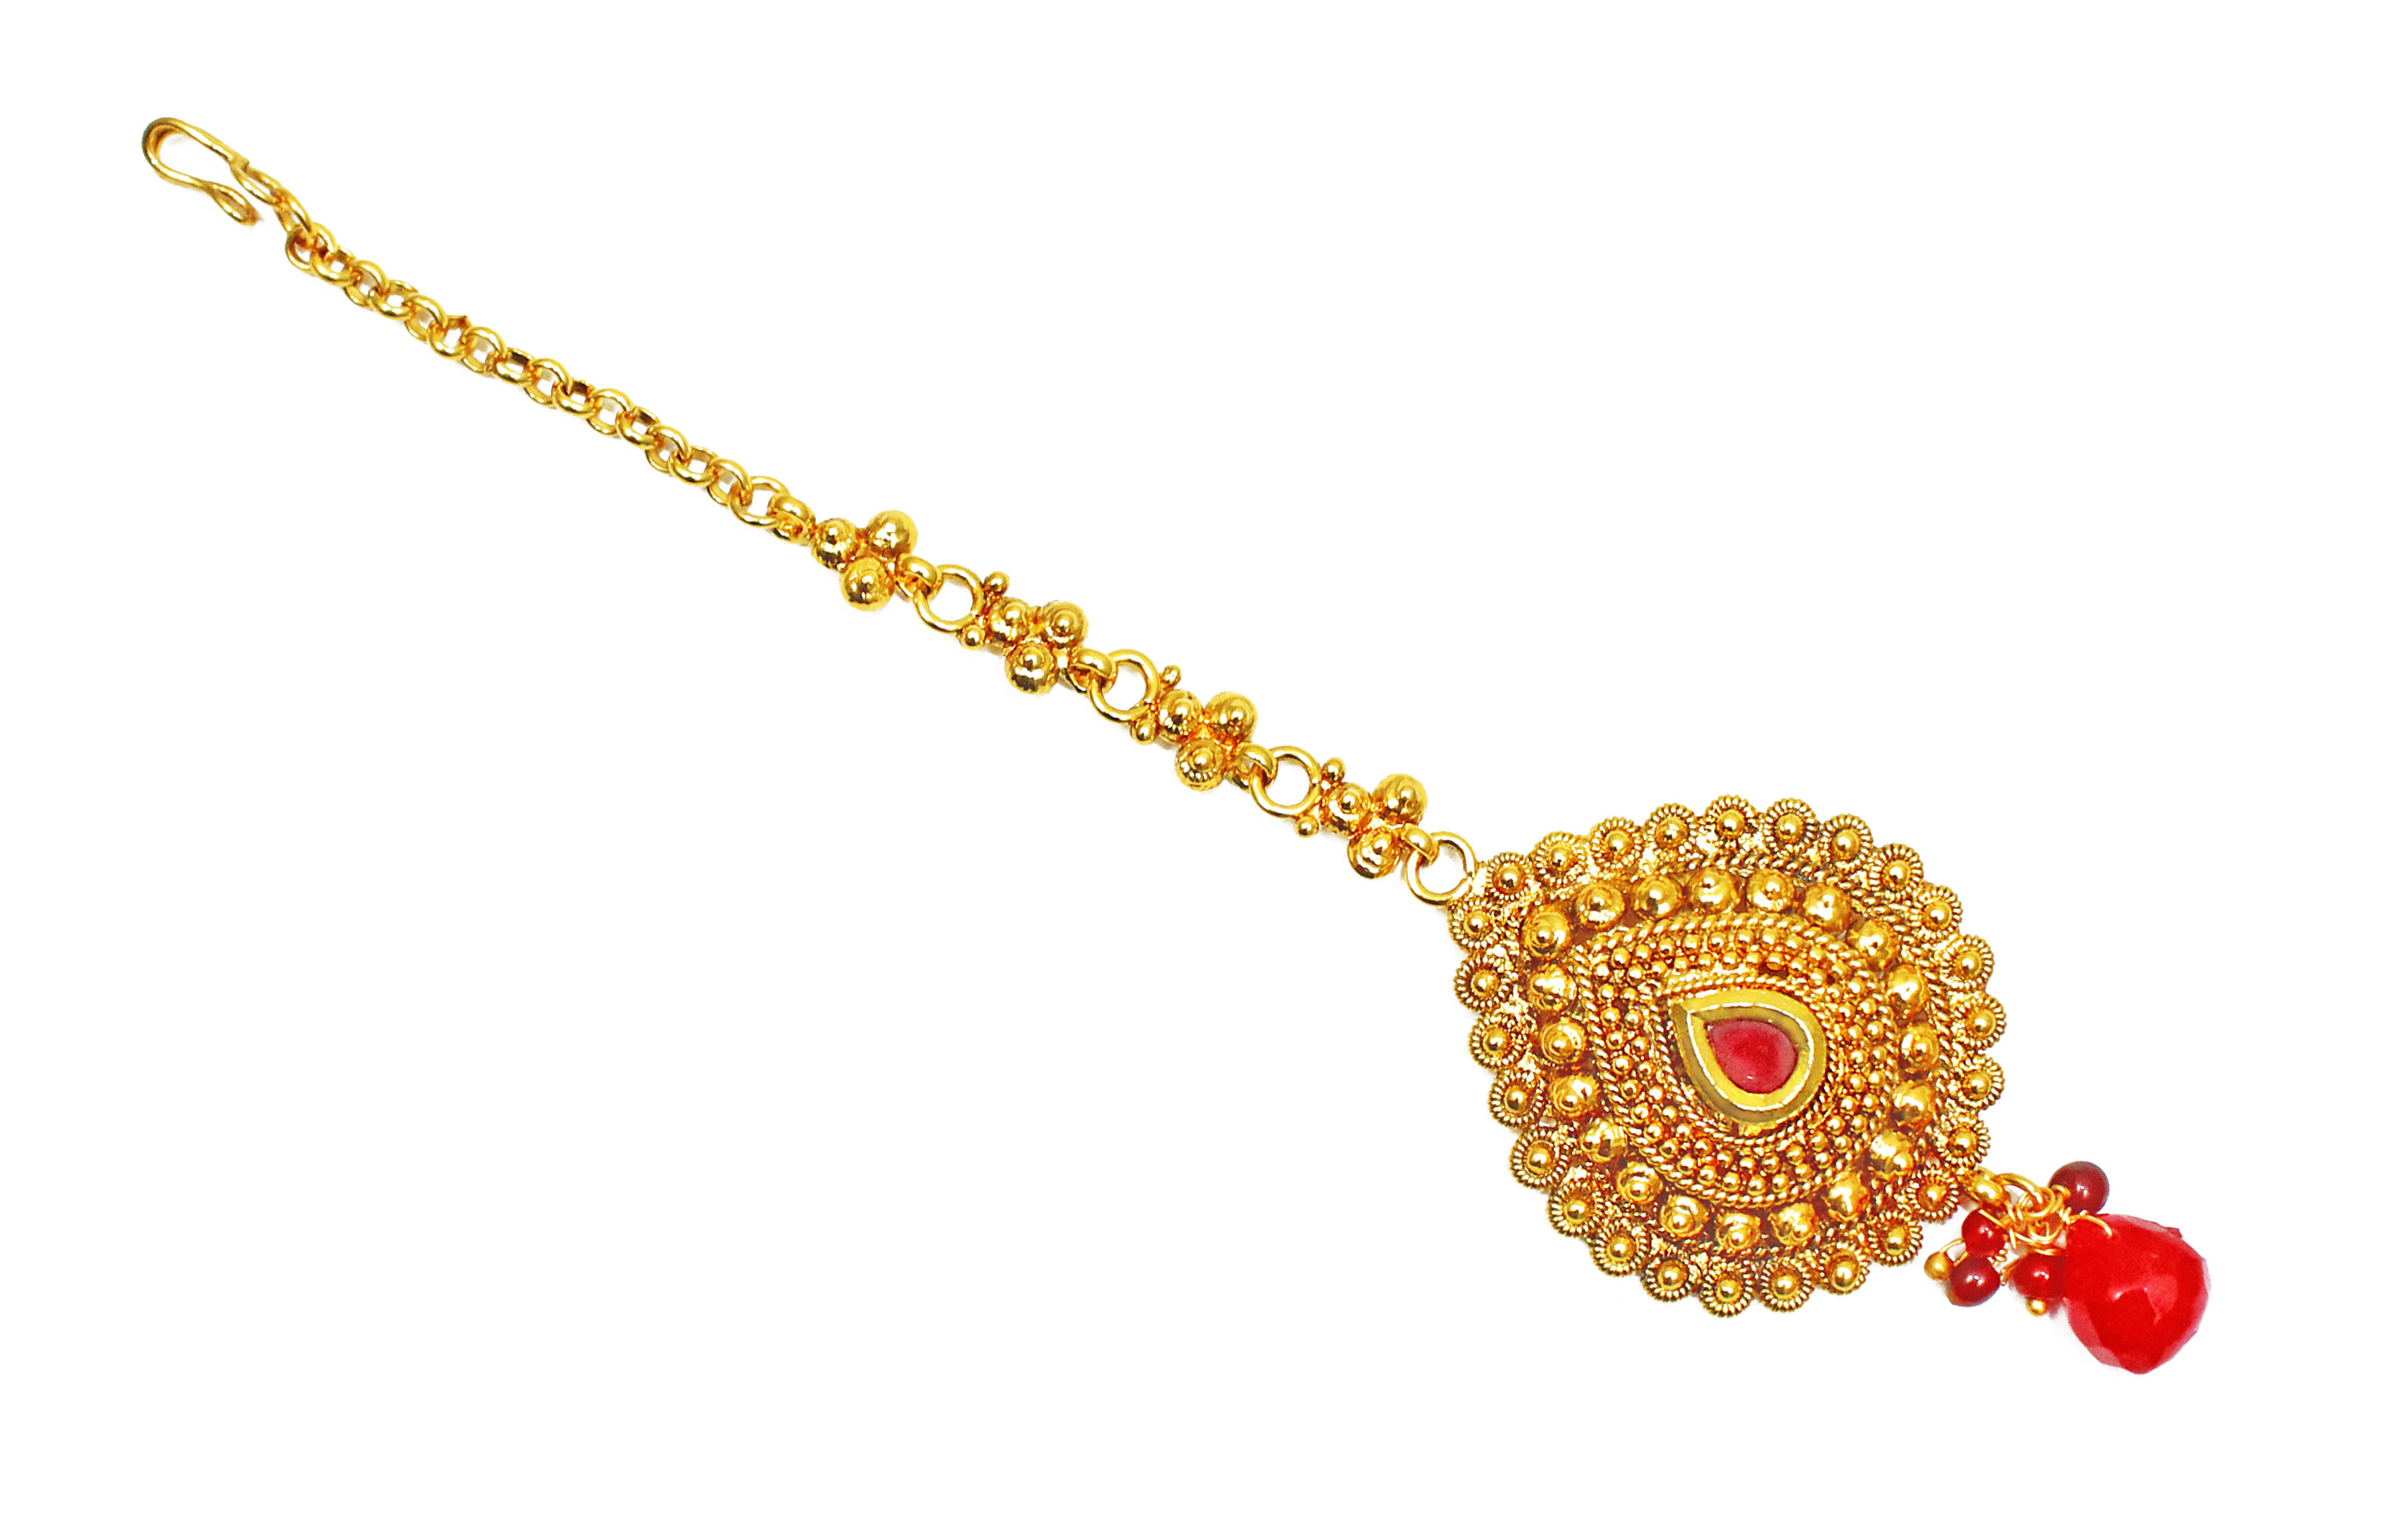 Golden maang tikka designs bridal jewellery bridal maang - Golden Maang Tikka Designs Bridal Jewellery Bridal Maang 4